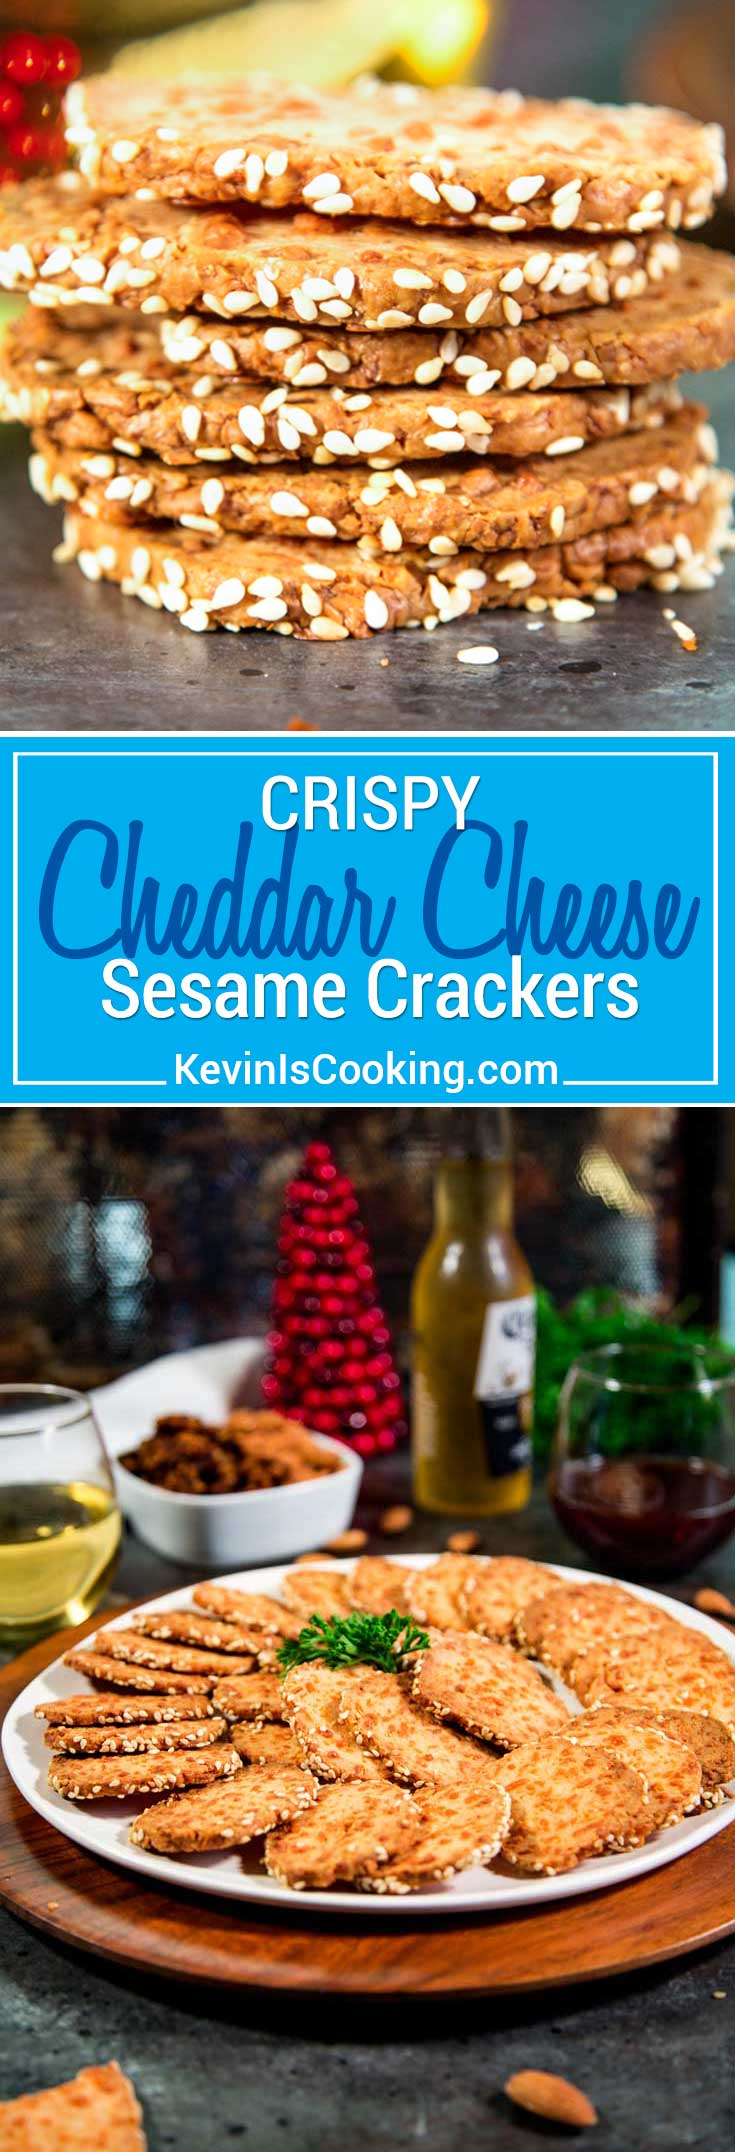 These easy Crispy Sesame Cheddar Cheese Crackers are made with cream and cheddar cheeses, flour, spices then rolled and sliced for baking. Great anytime snacking!